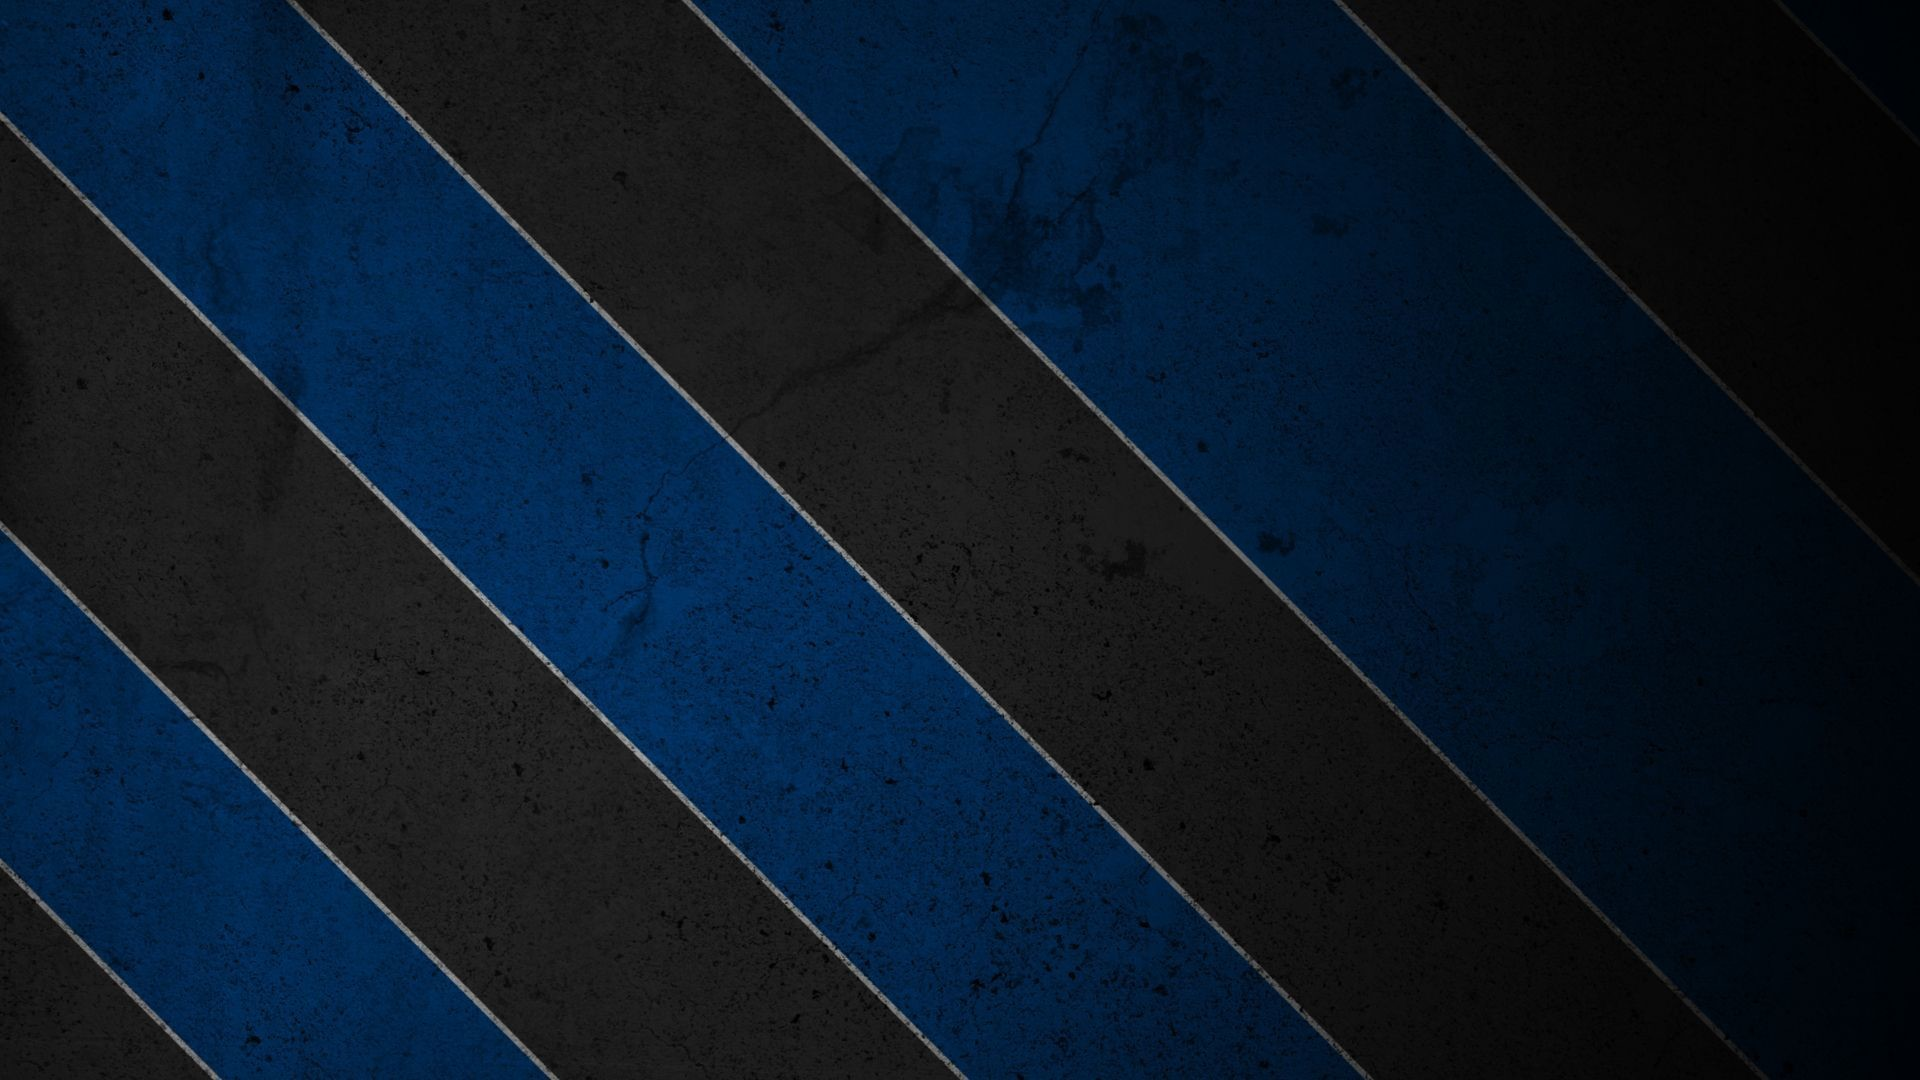 Black And Blue Wallpaper 73 Images